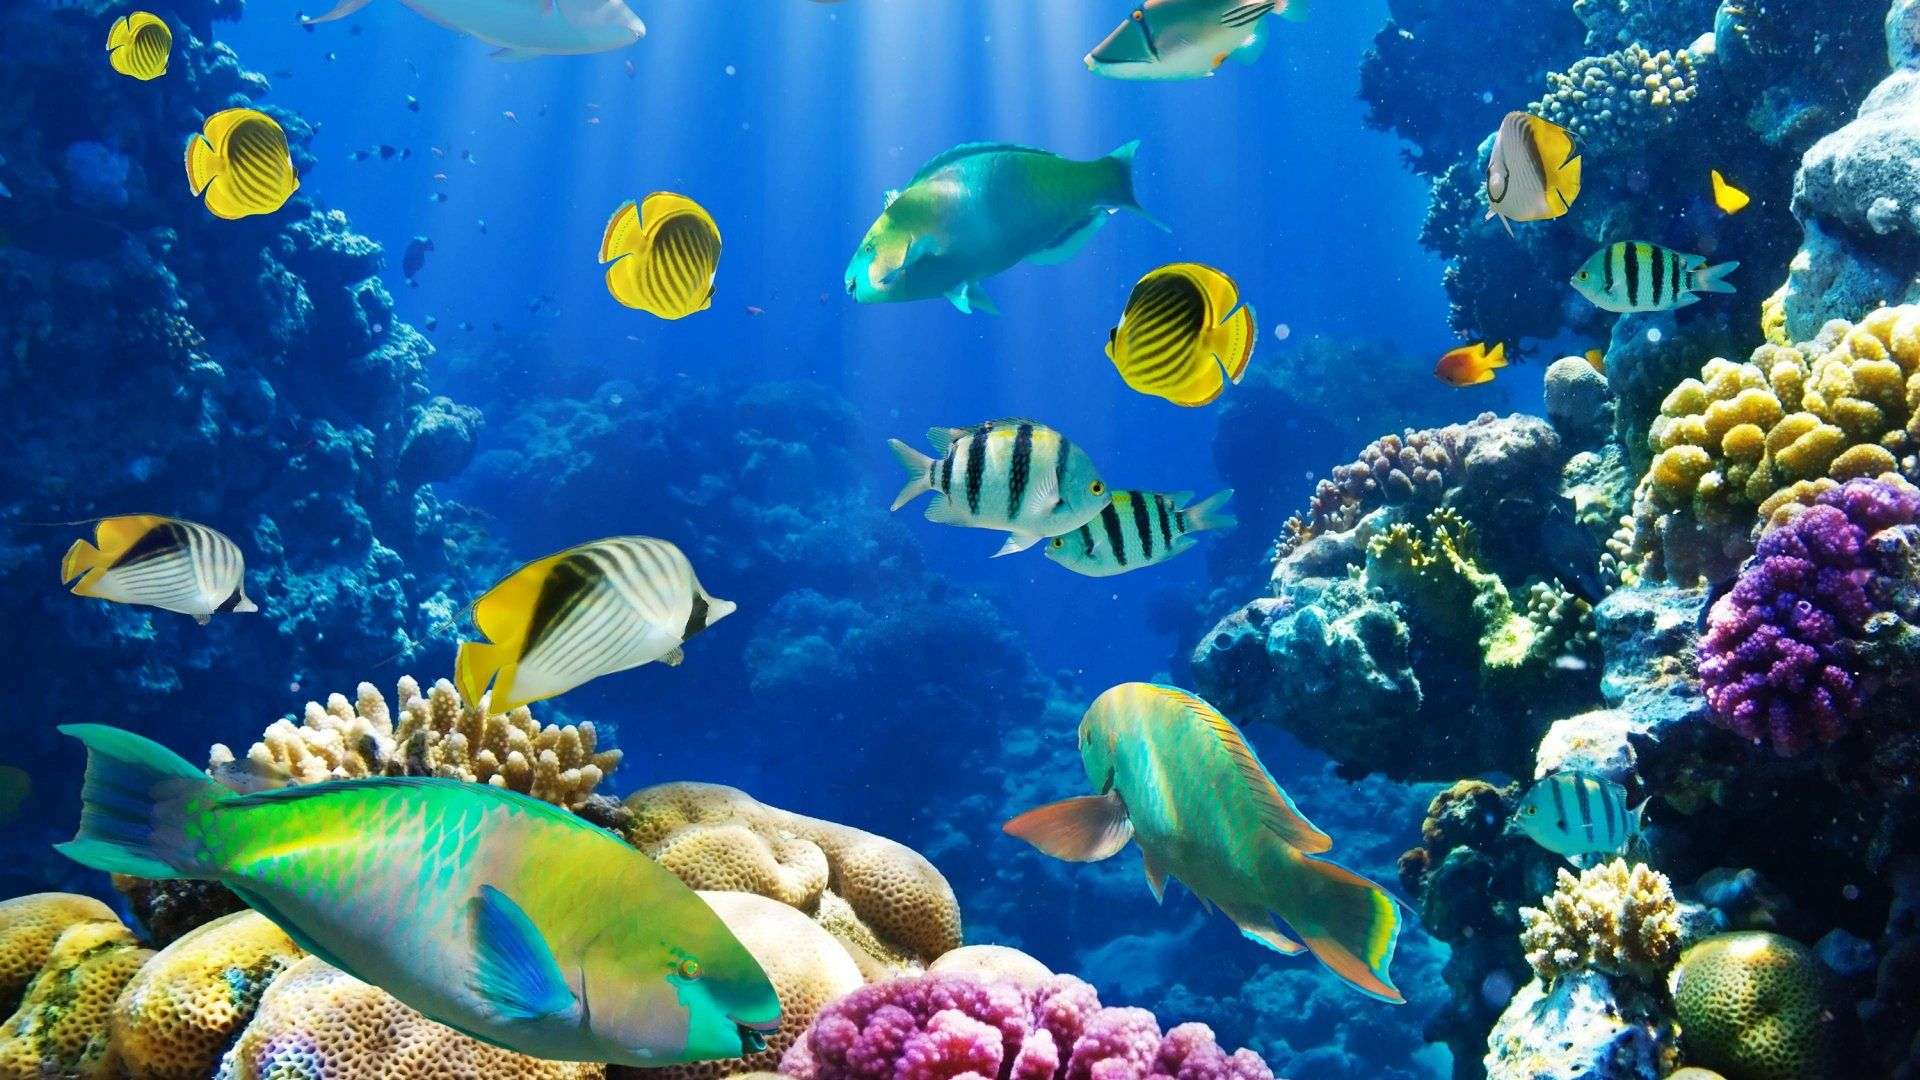 Today We Are Going To Give Some Information About The Fishes And The Different Kinds Of The Fishes Descrip Fish Background Fish Wallpaper Underwater Wallpaper